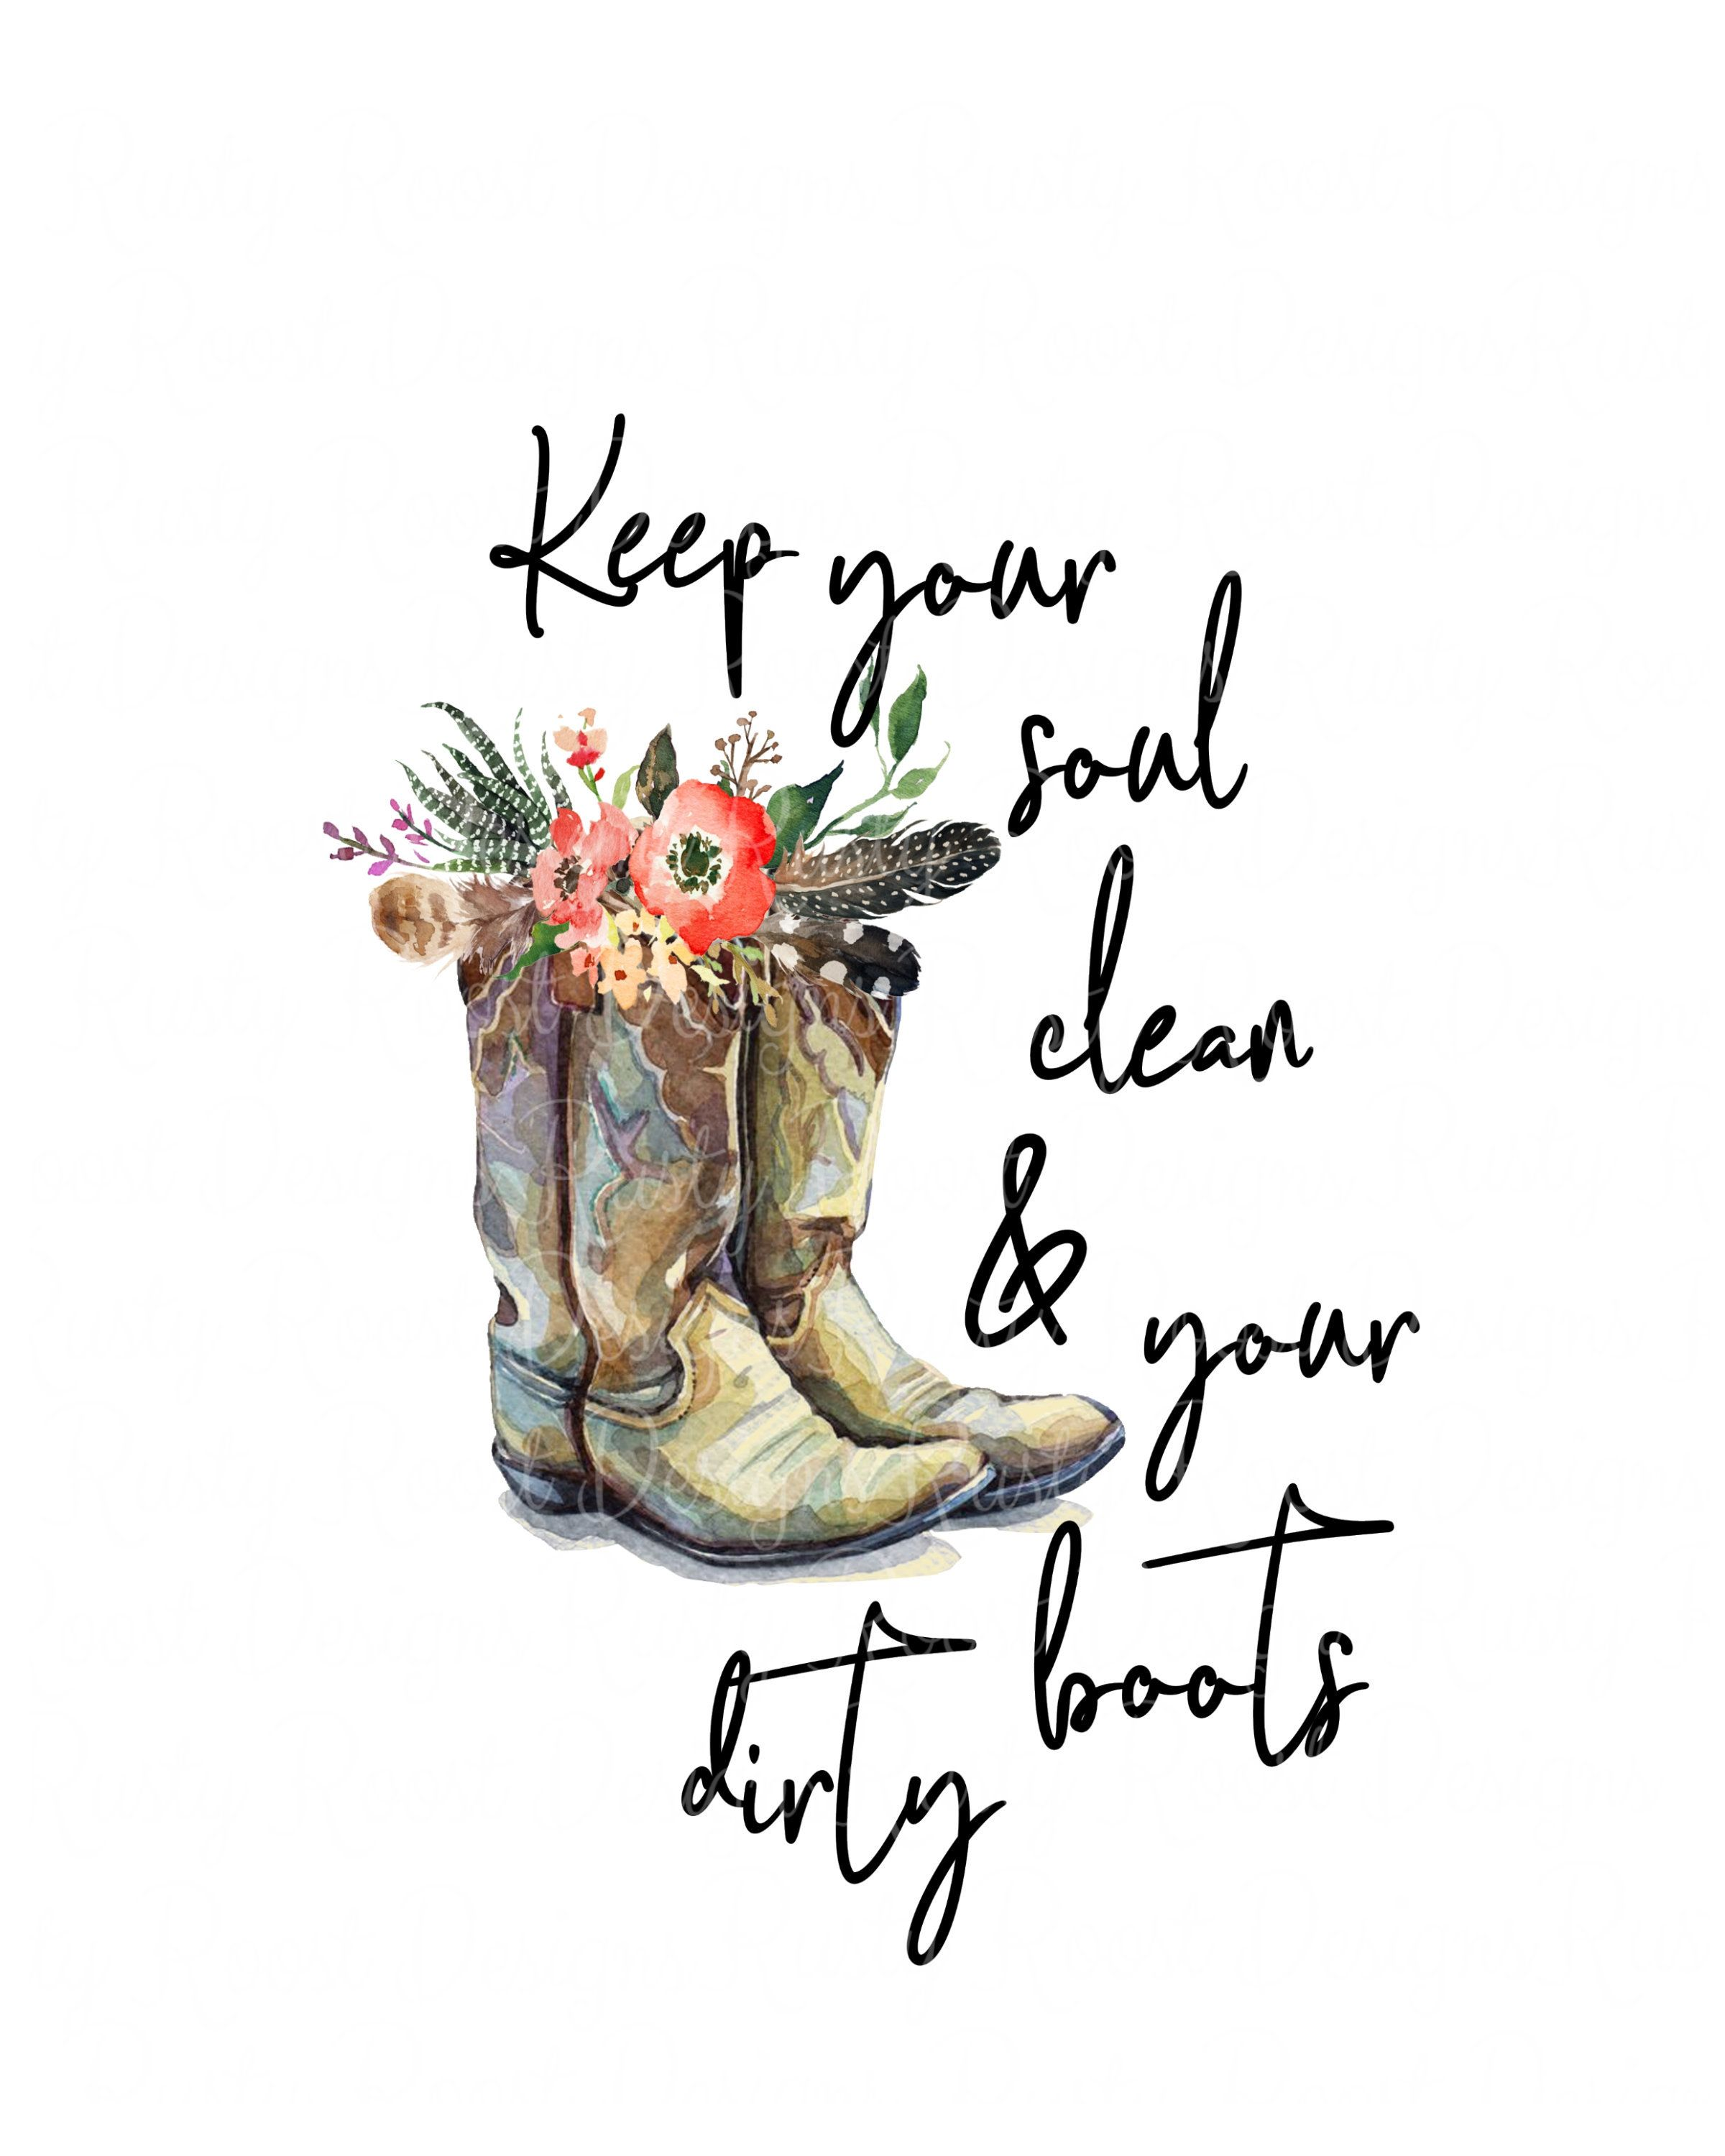 Cowgirl Boots Png Boot Sublimation Designs Downloads Digital Download Sublimation Graphics Boots With Flowers Png Cowgirl Saying Png Cowgirl Shirts Sublime Country Quotes